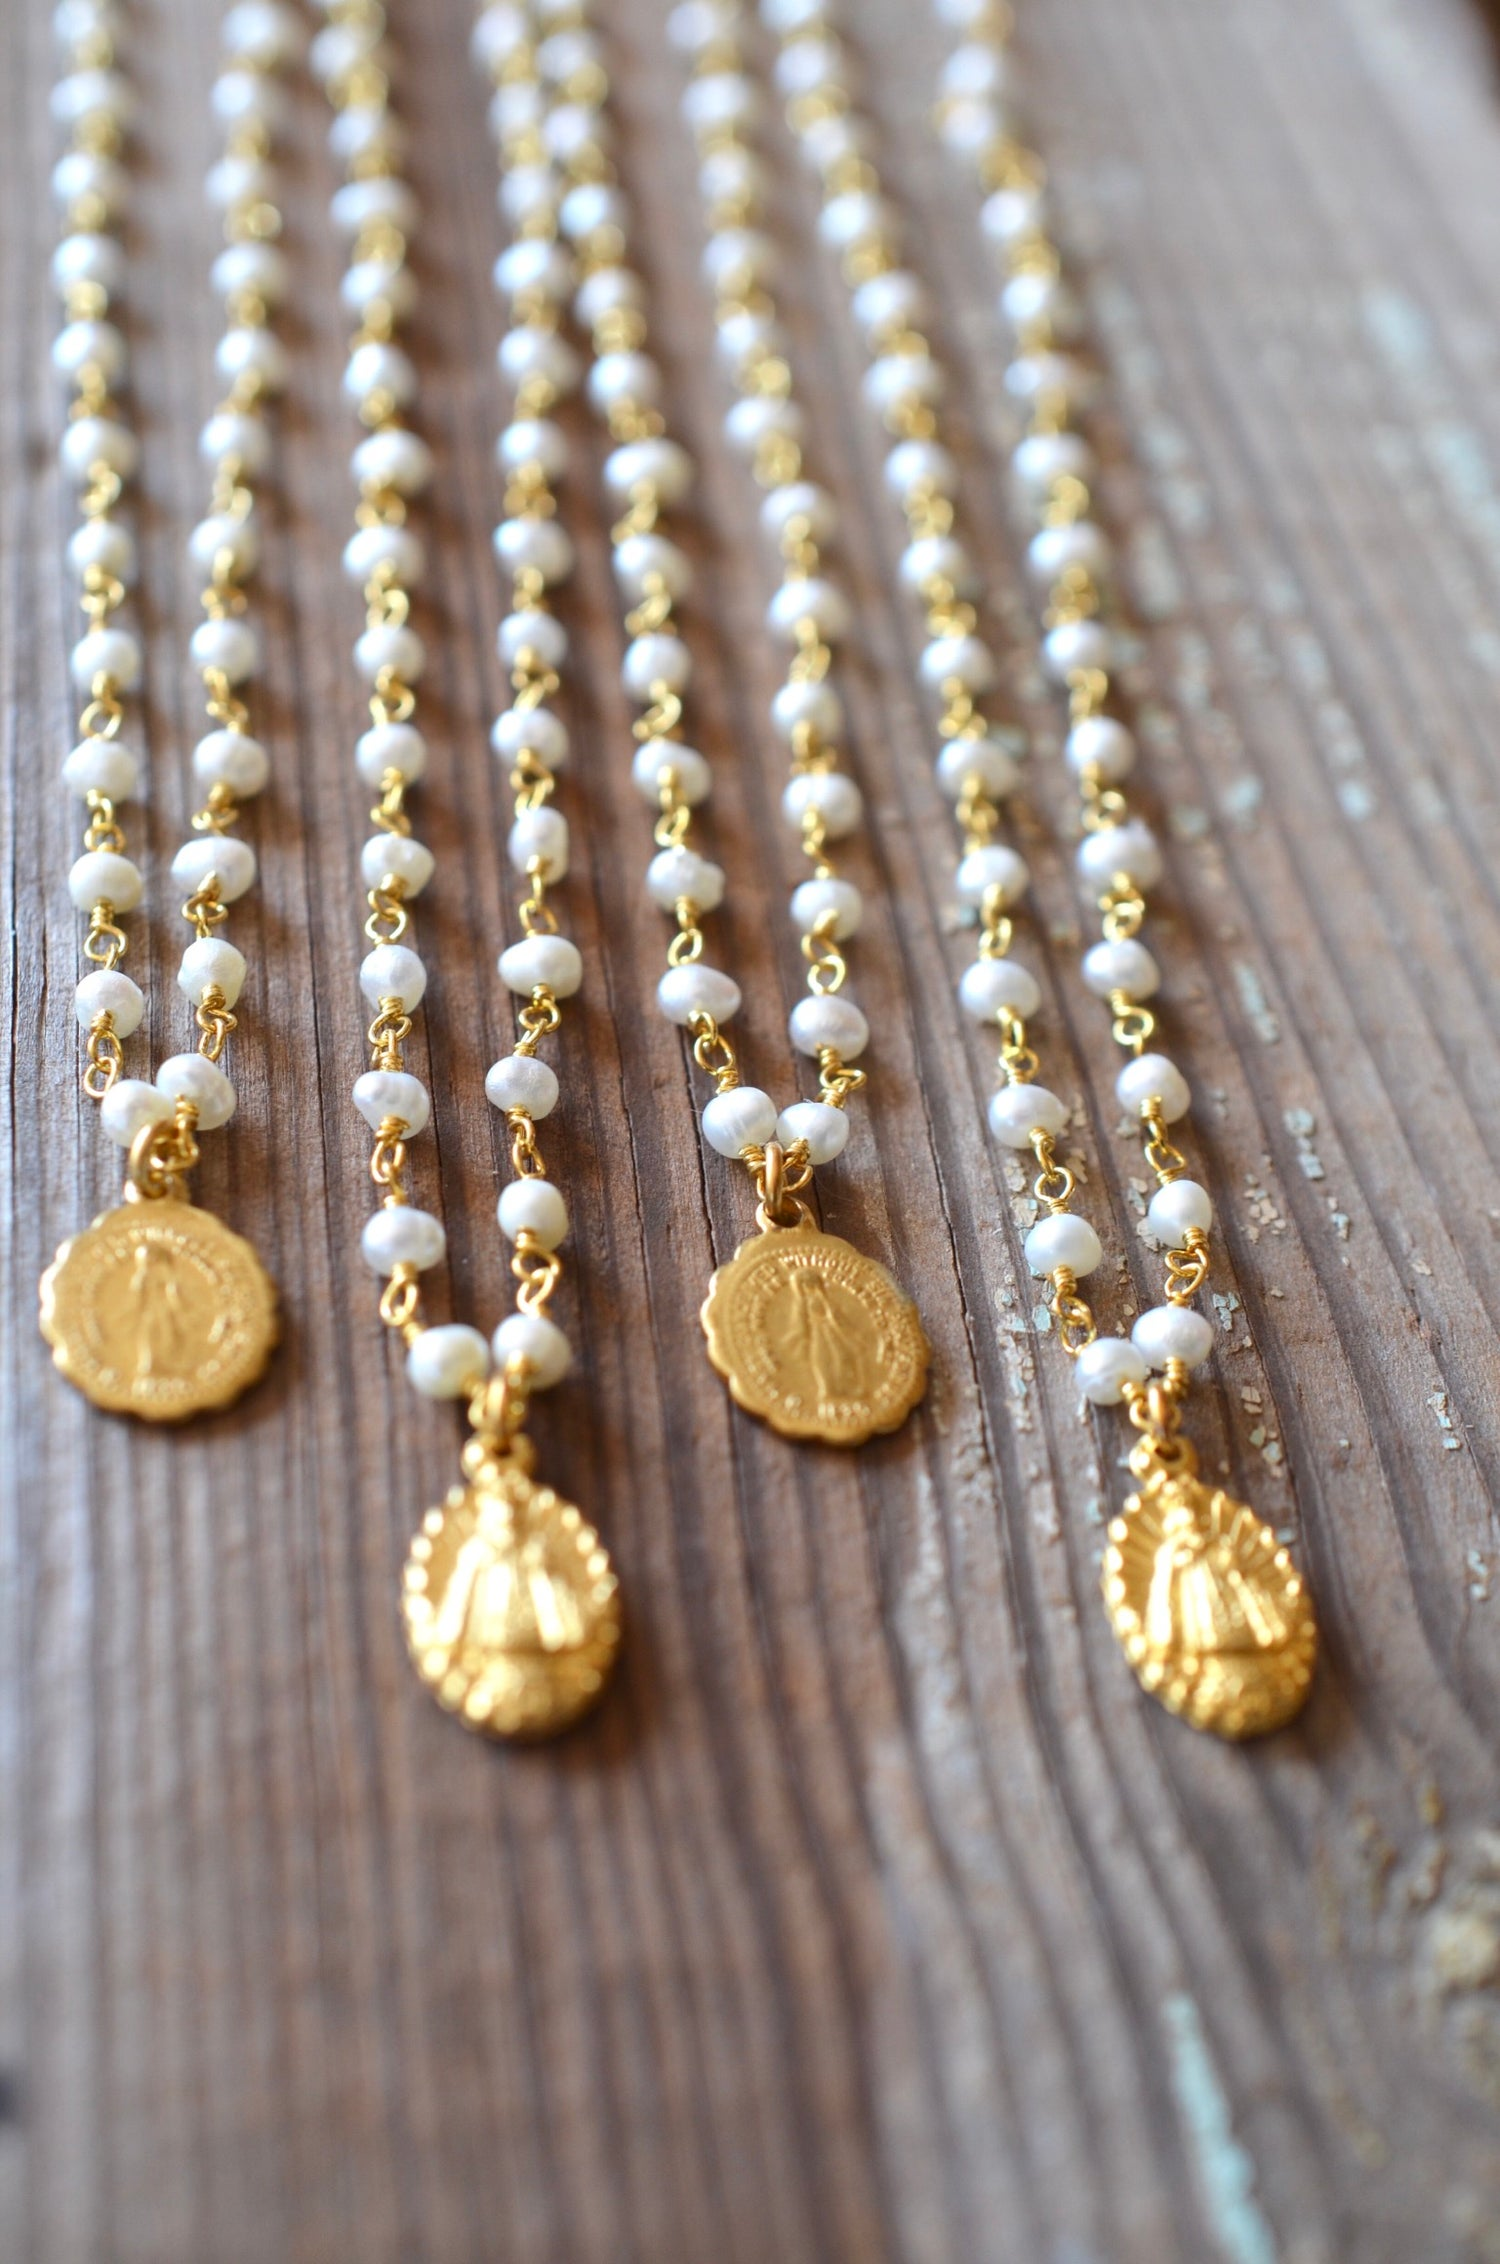 Image of Petite Religious Medals on Pearls